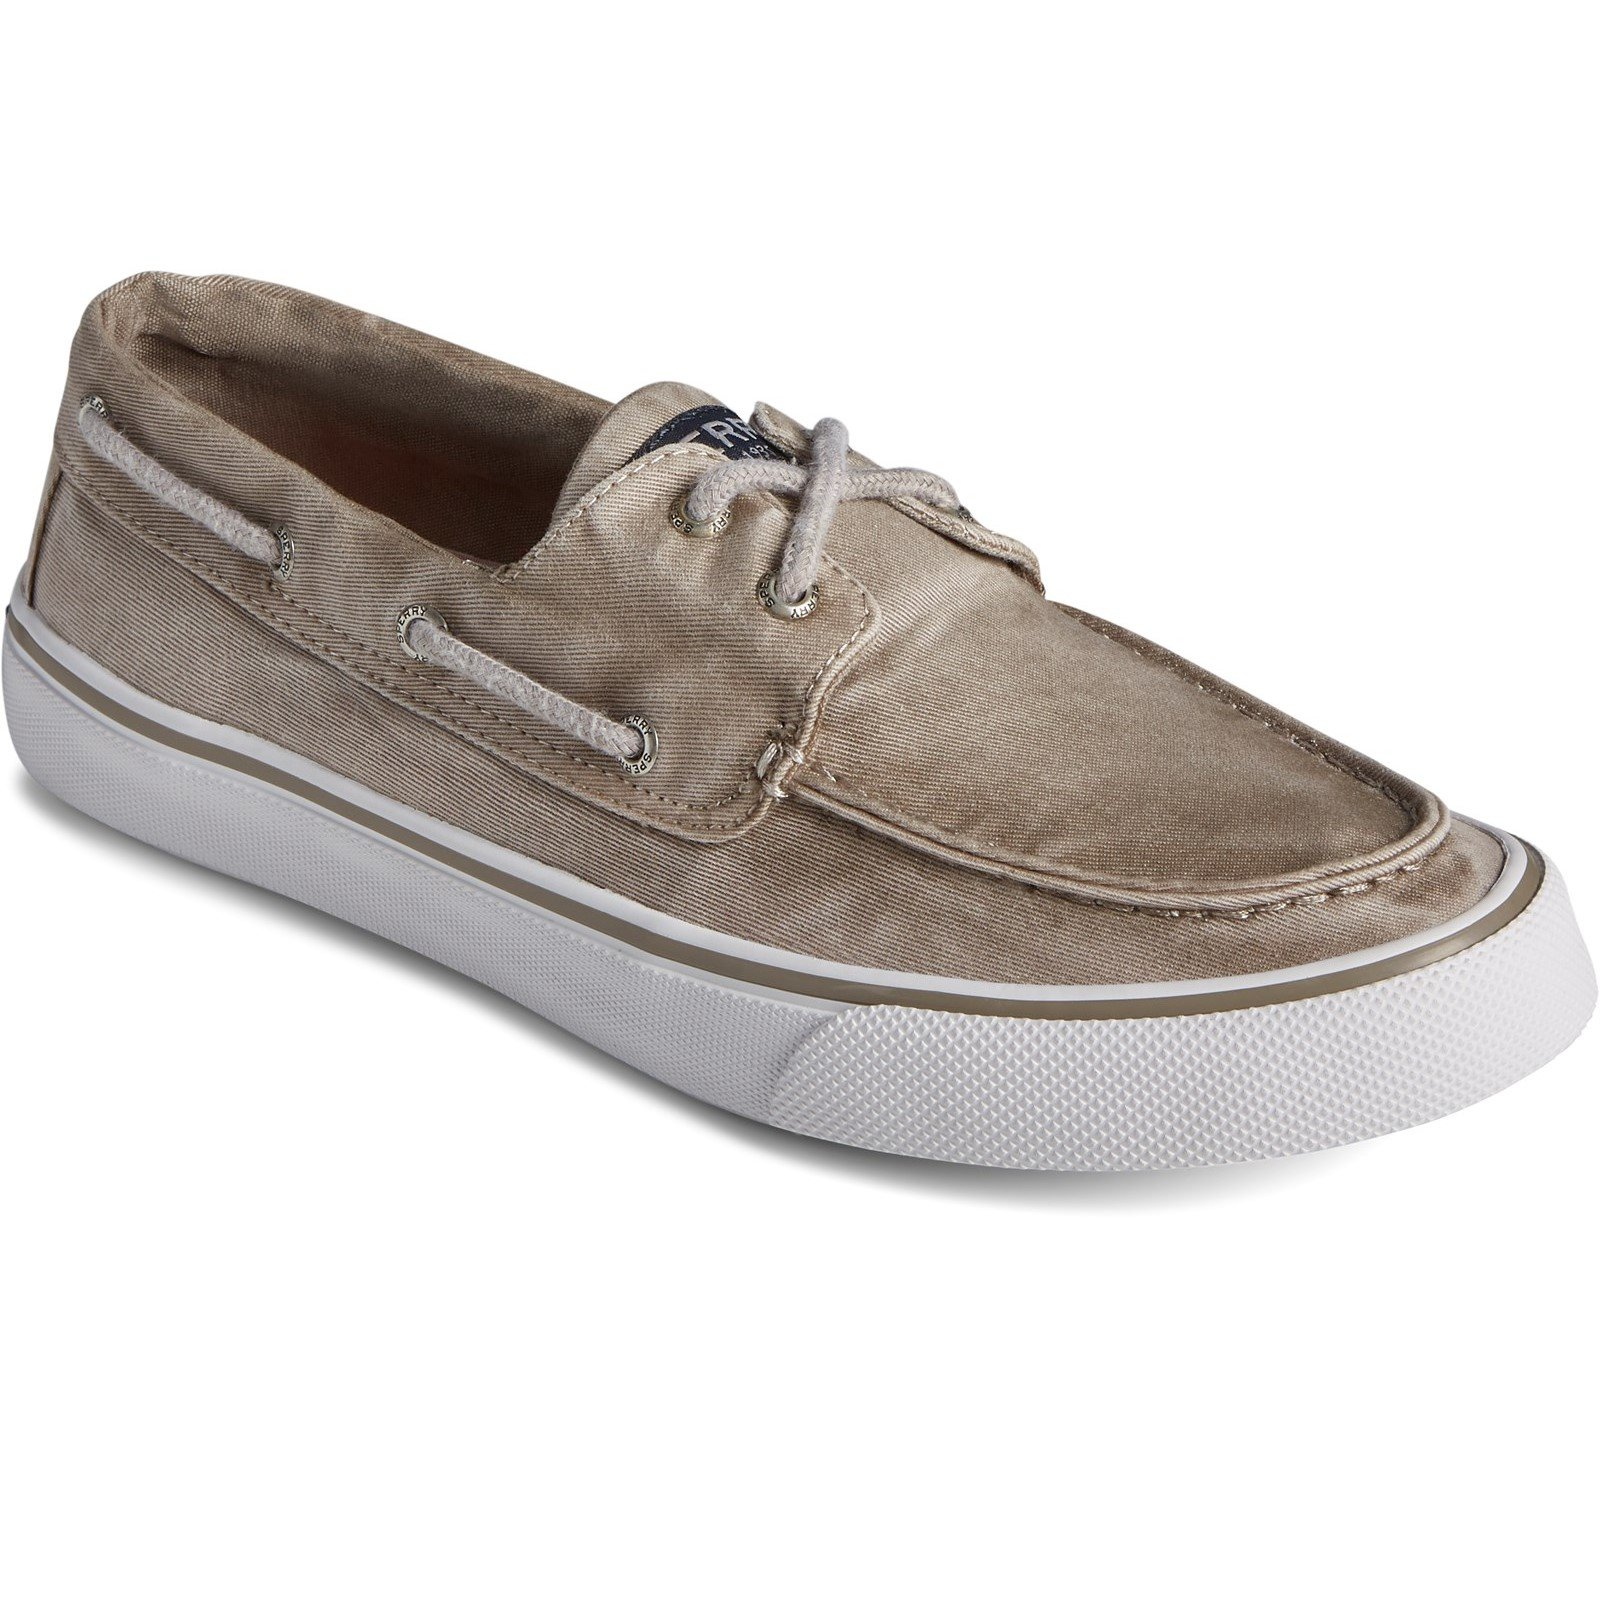 Sperry Men's Bahama II Boat Shoe Various Colours 32923 - Taupe 11